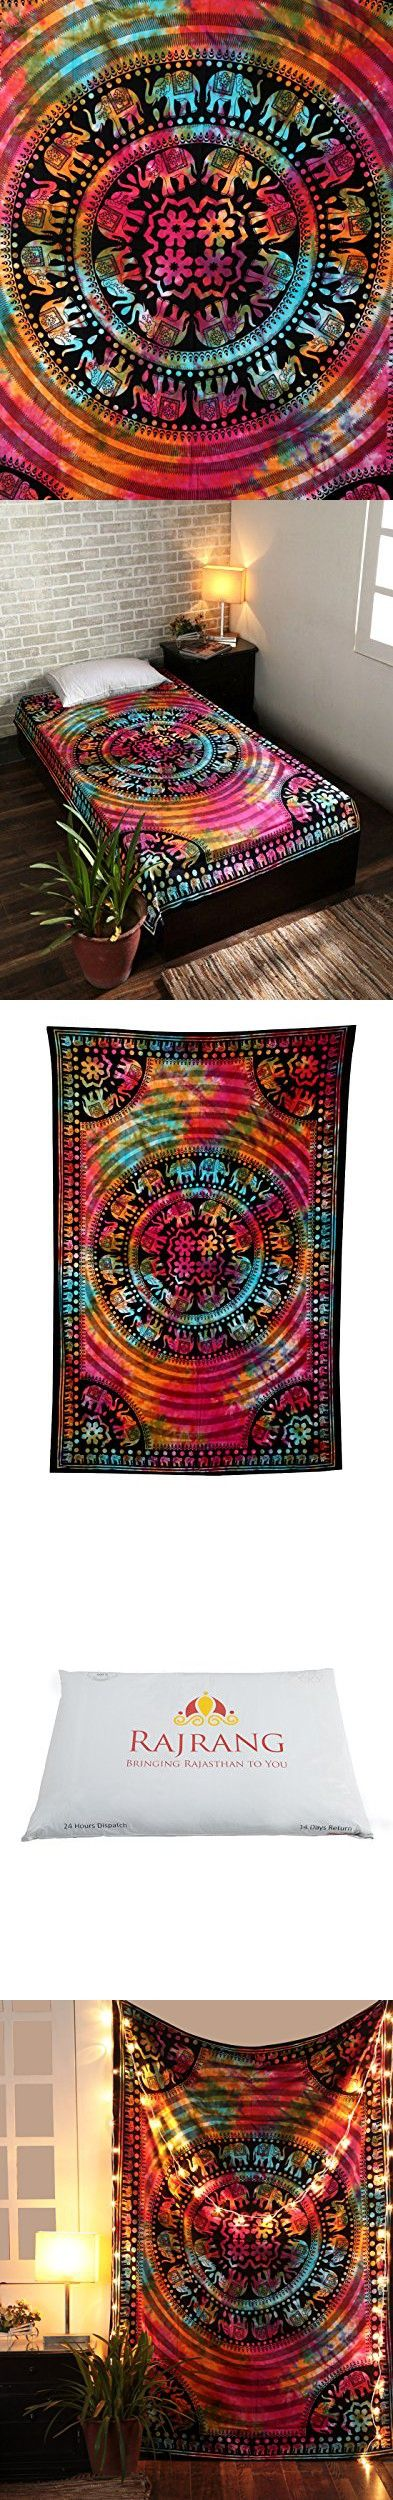 Tie Dye Elephant Mandala Hippie Tapestry, Hippy Mandala Bohemian Tapestries, Indian Dorm Decor, Psychedelic Tapestry Wall Hanging Ethnic Decorative